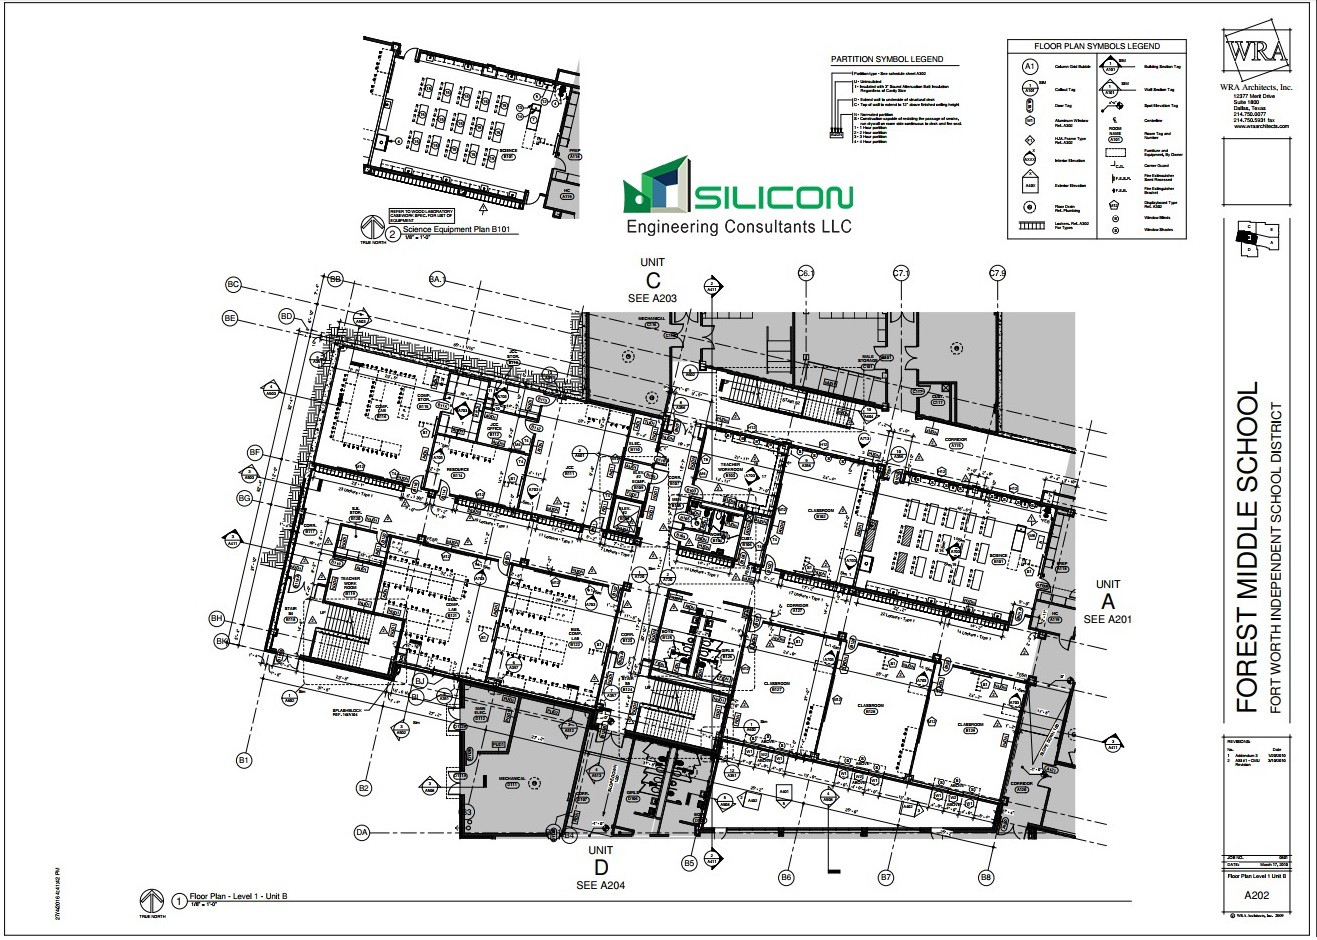 Structural Steel Detailing Services USA - Silicon